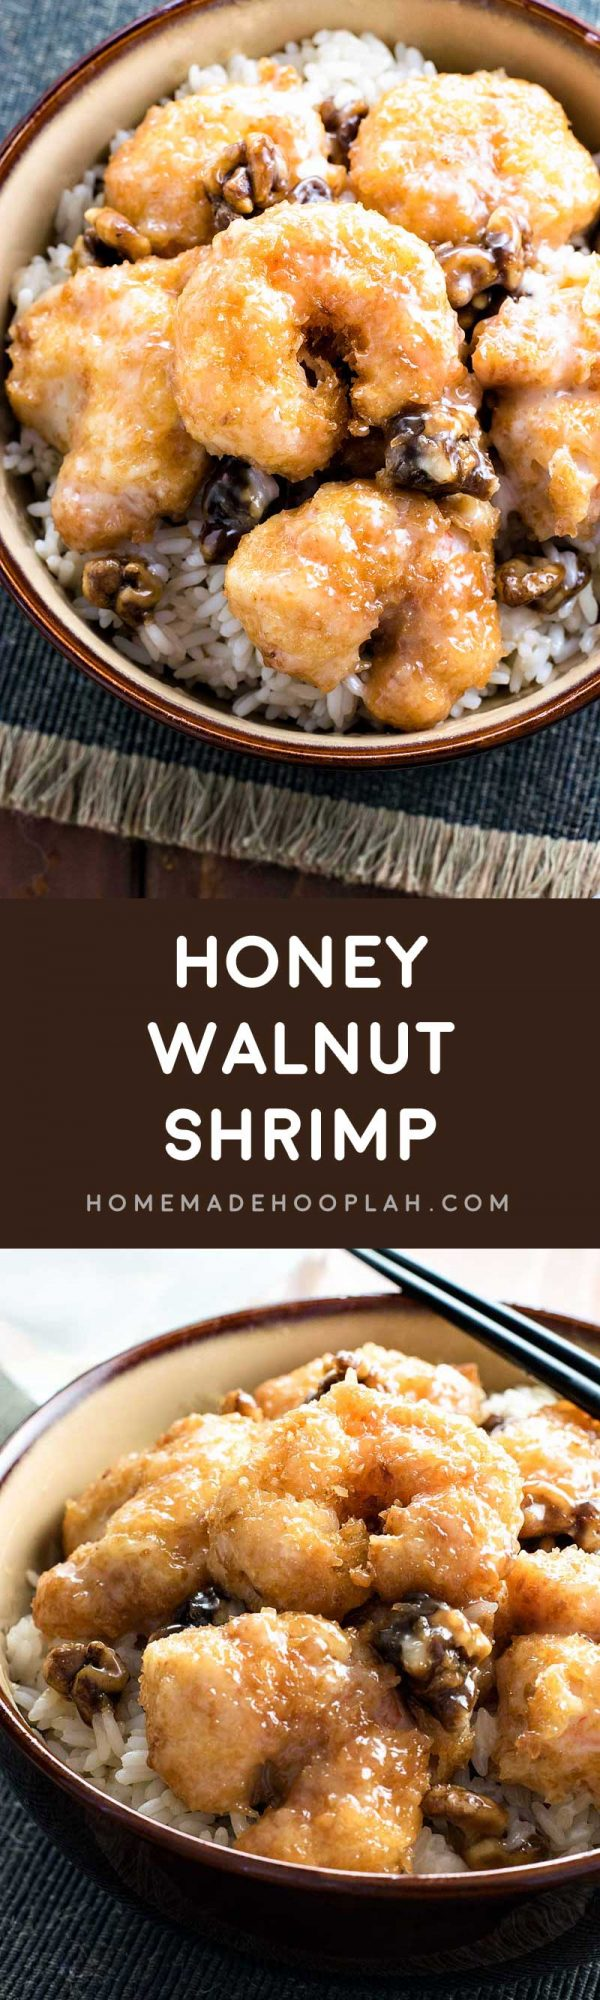 honey walnut shrimp  homemade hooplah